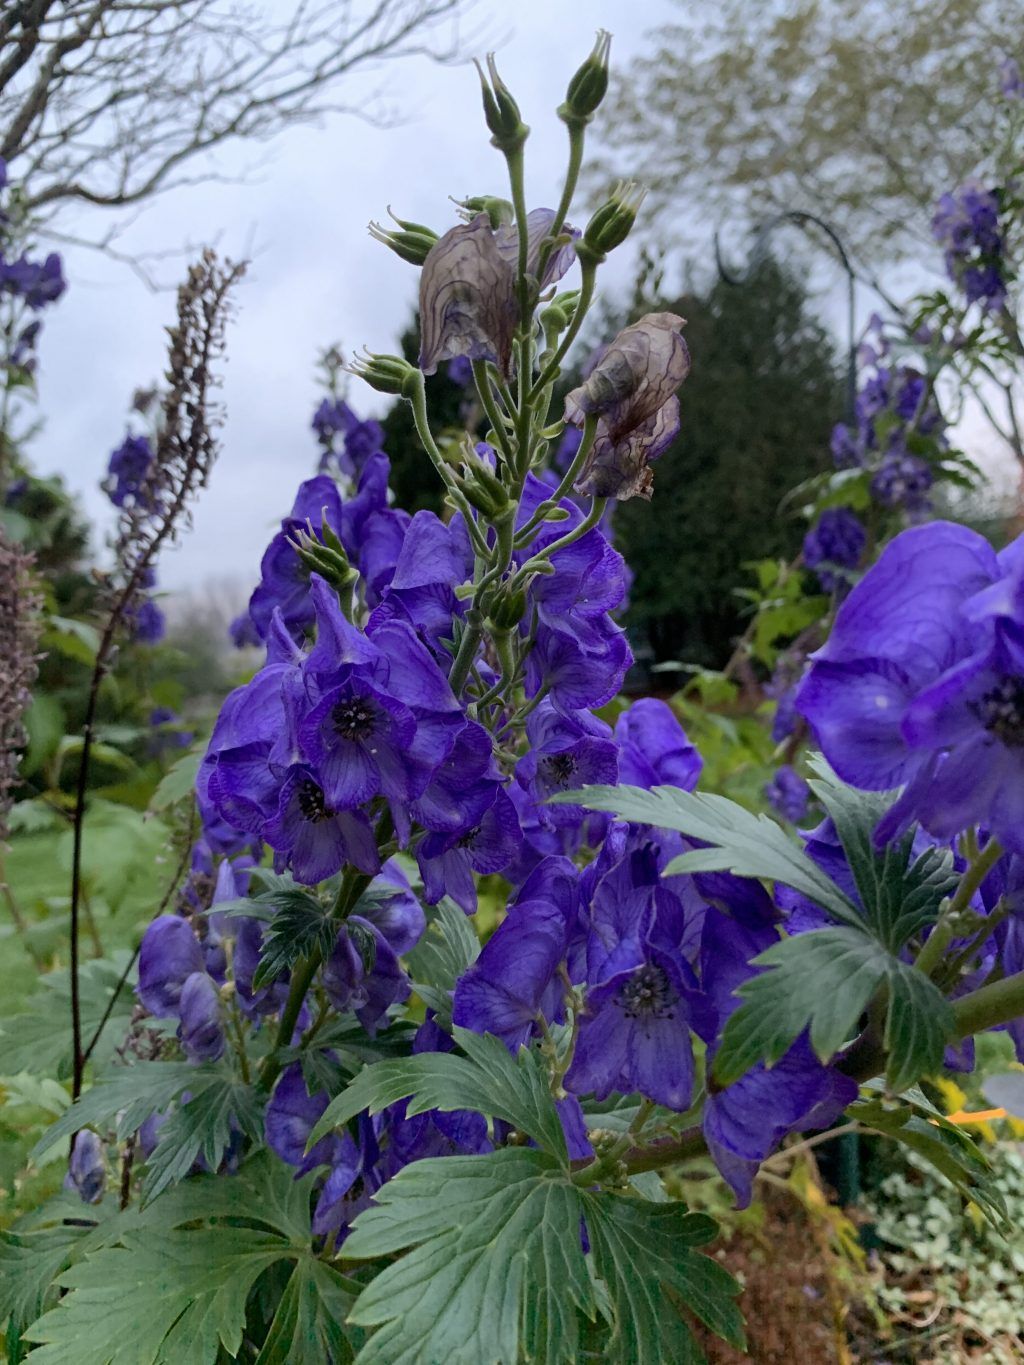 Monkshood Fall blooming flowers